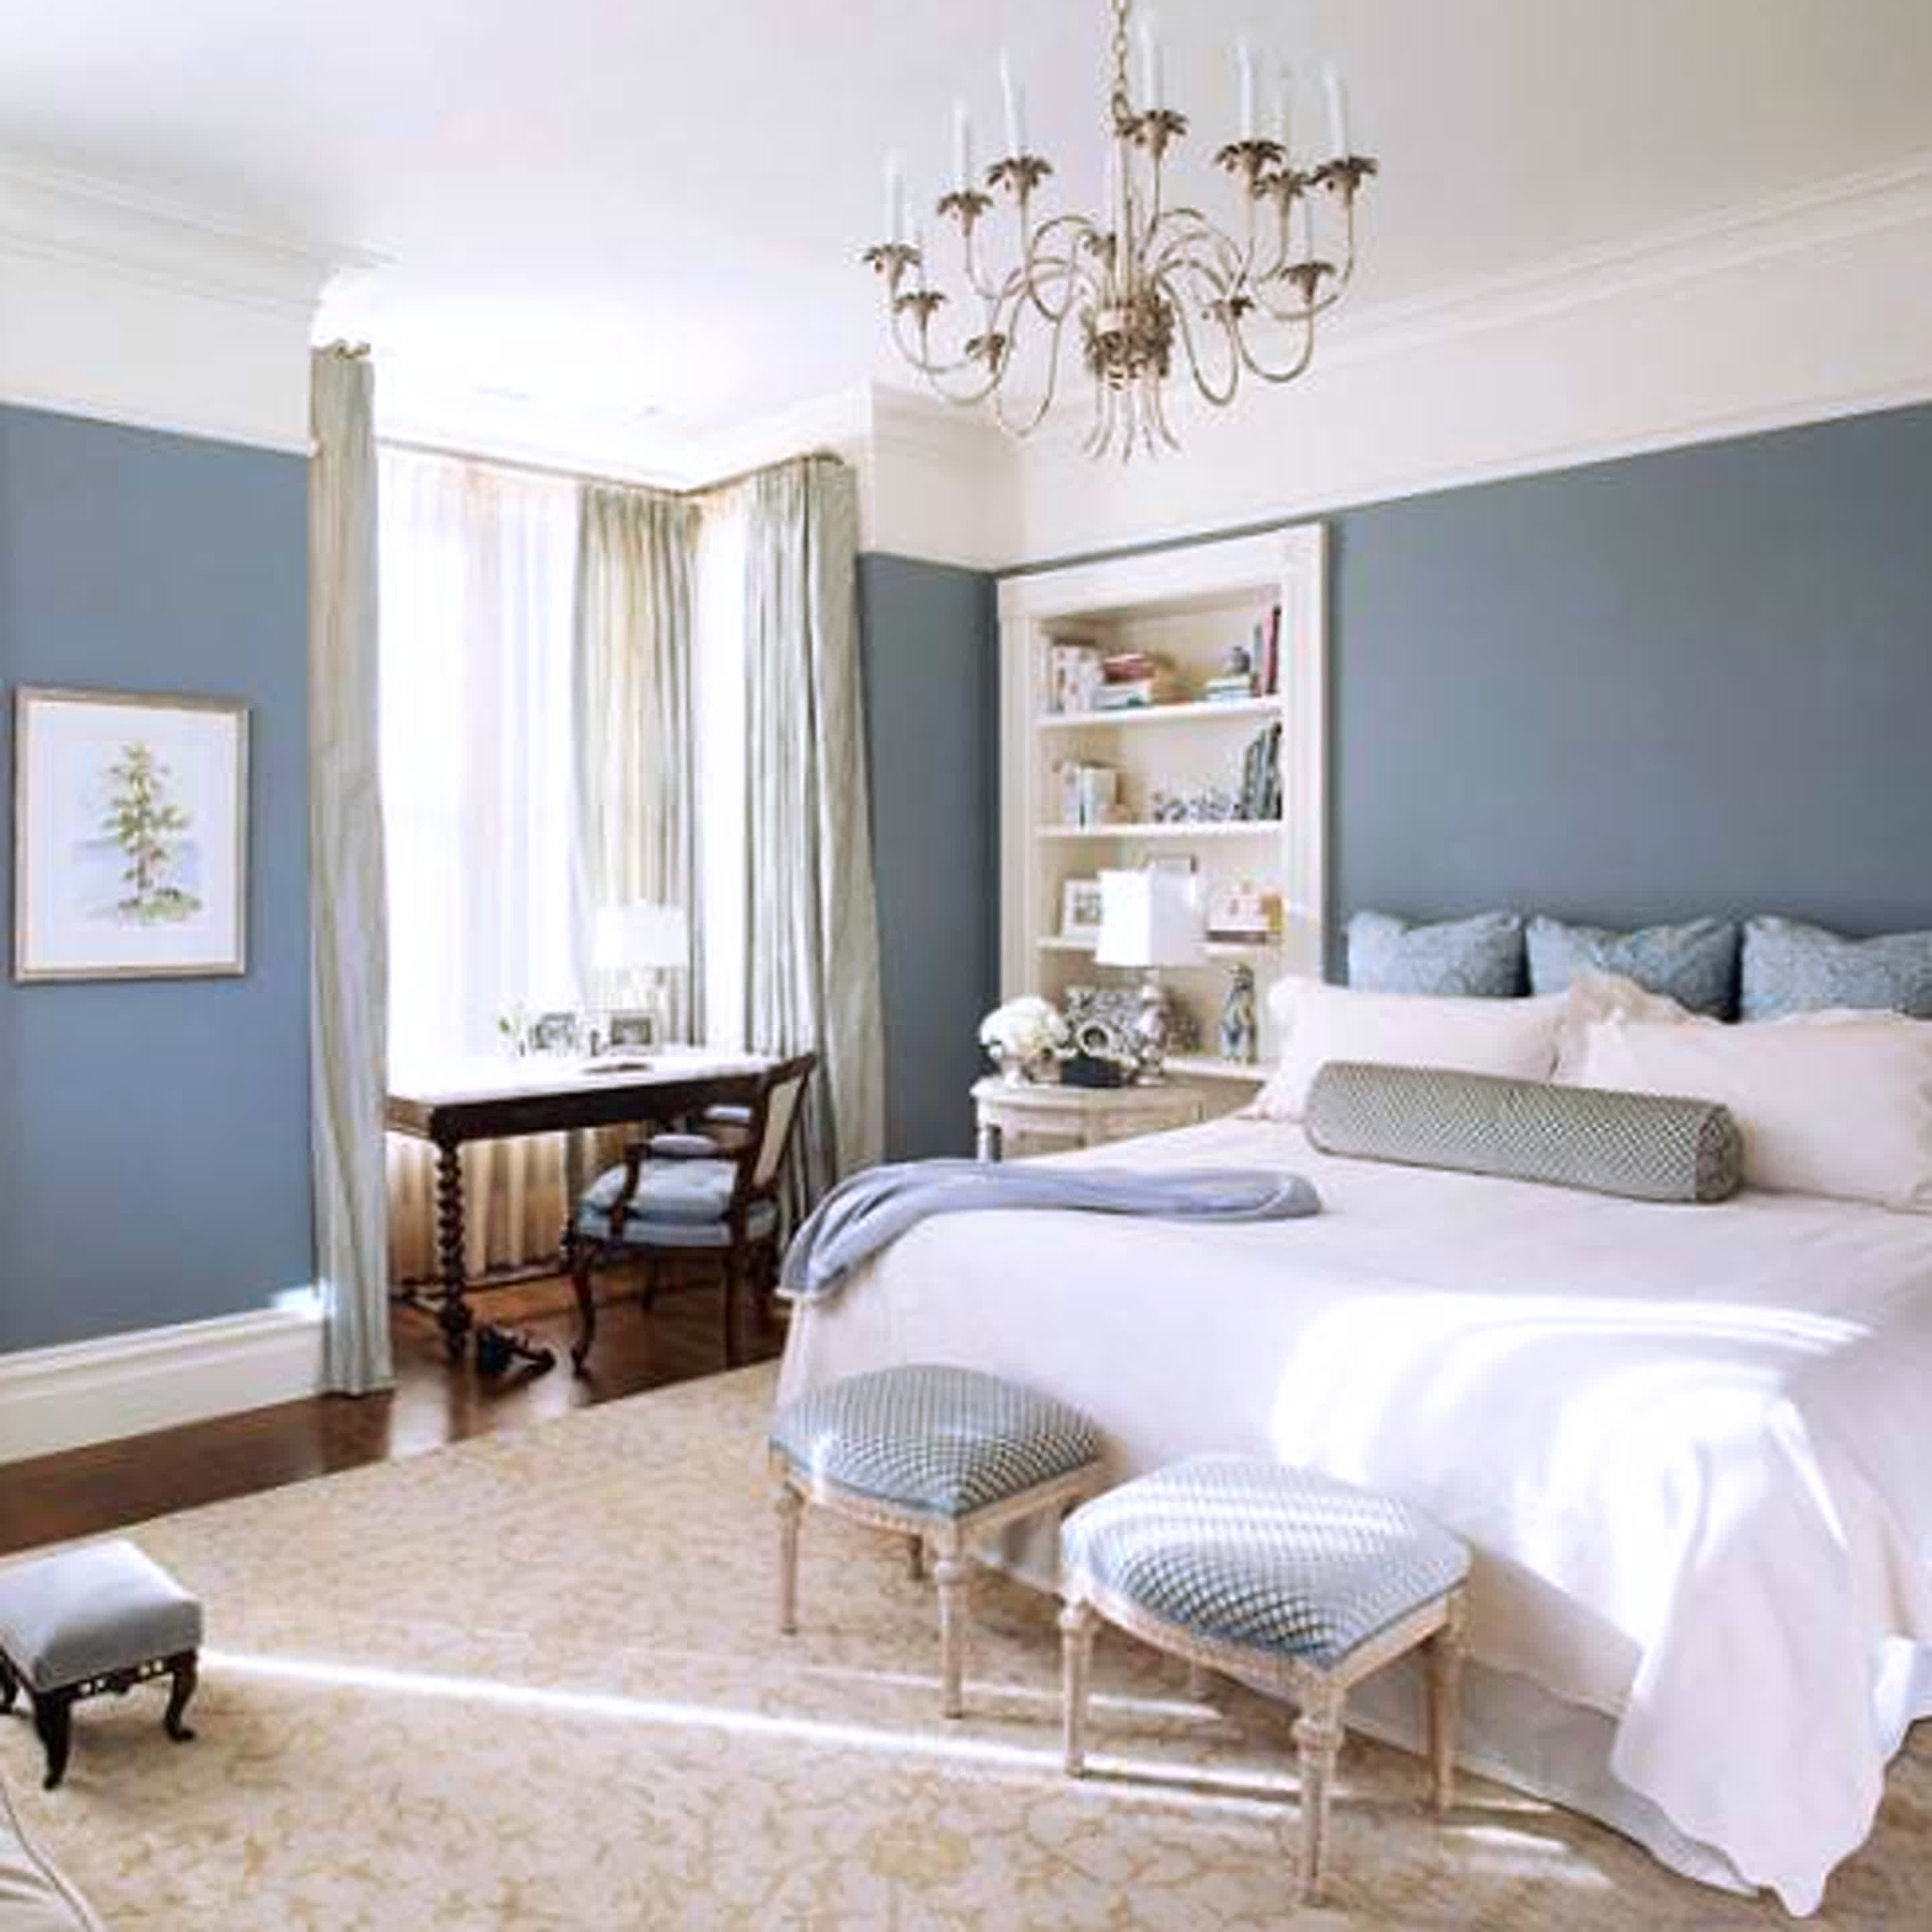 10 Stylish Blue And White Bedroom Ideas navy blue and white and gray bedroom e280a2 white bedroom ideas 2020